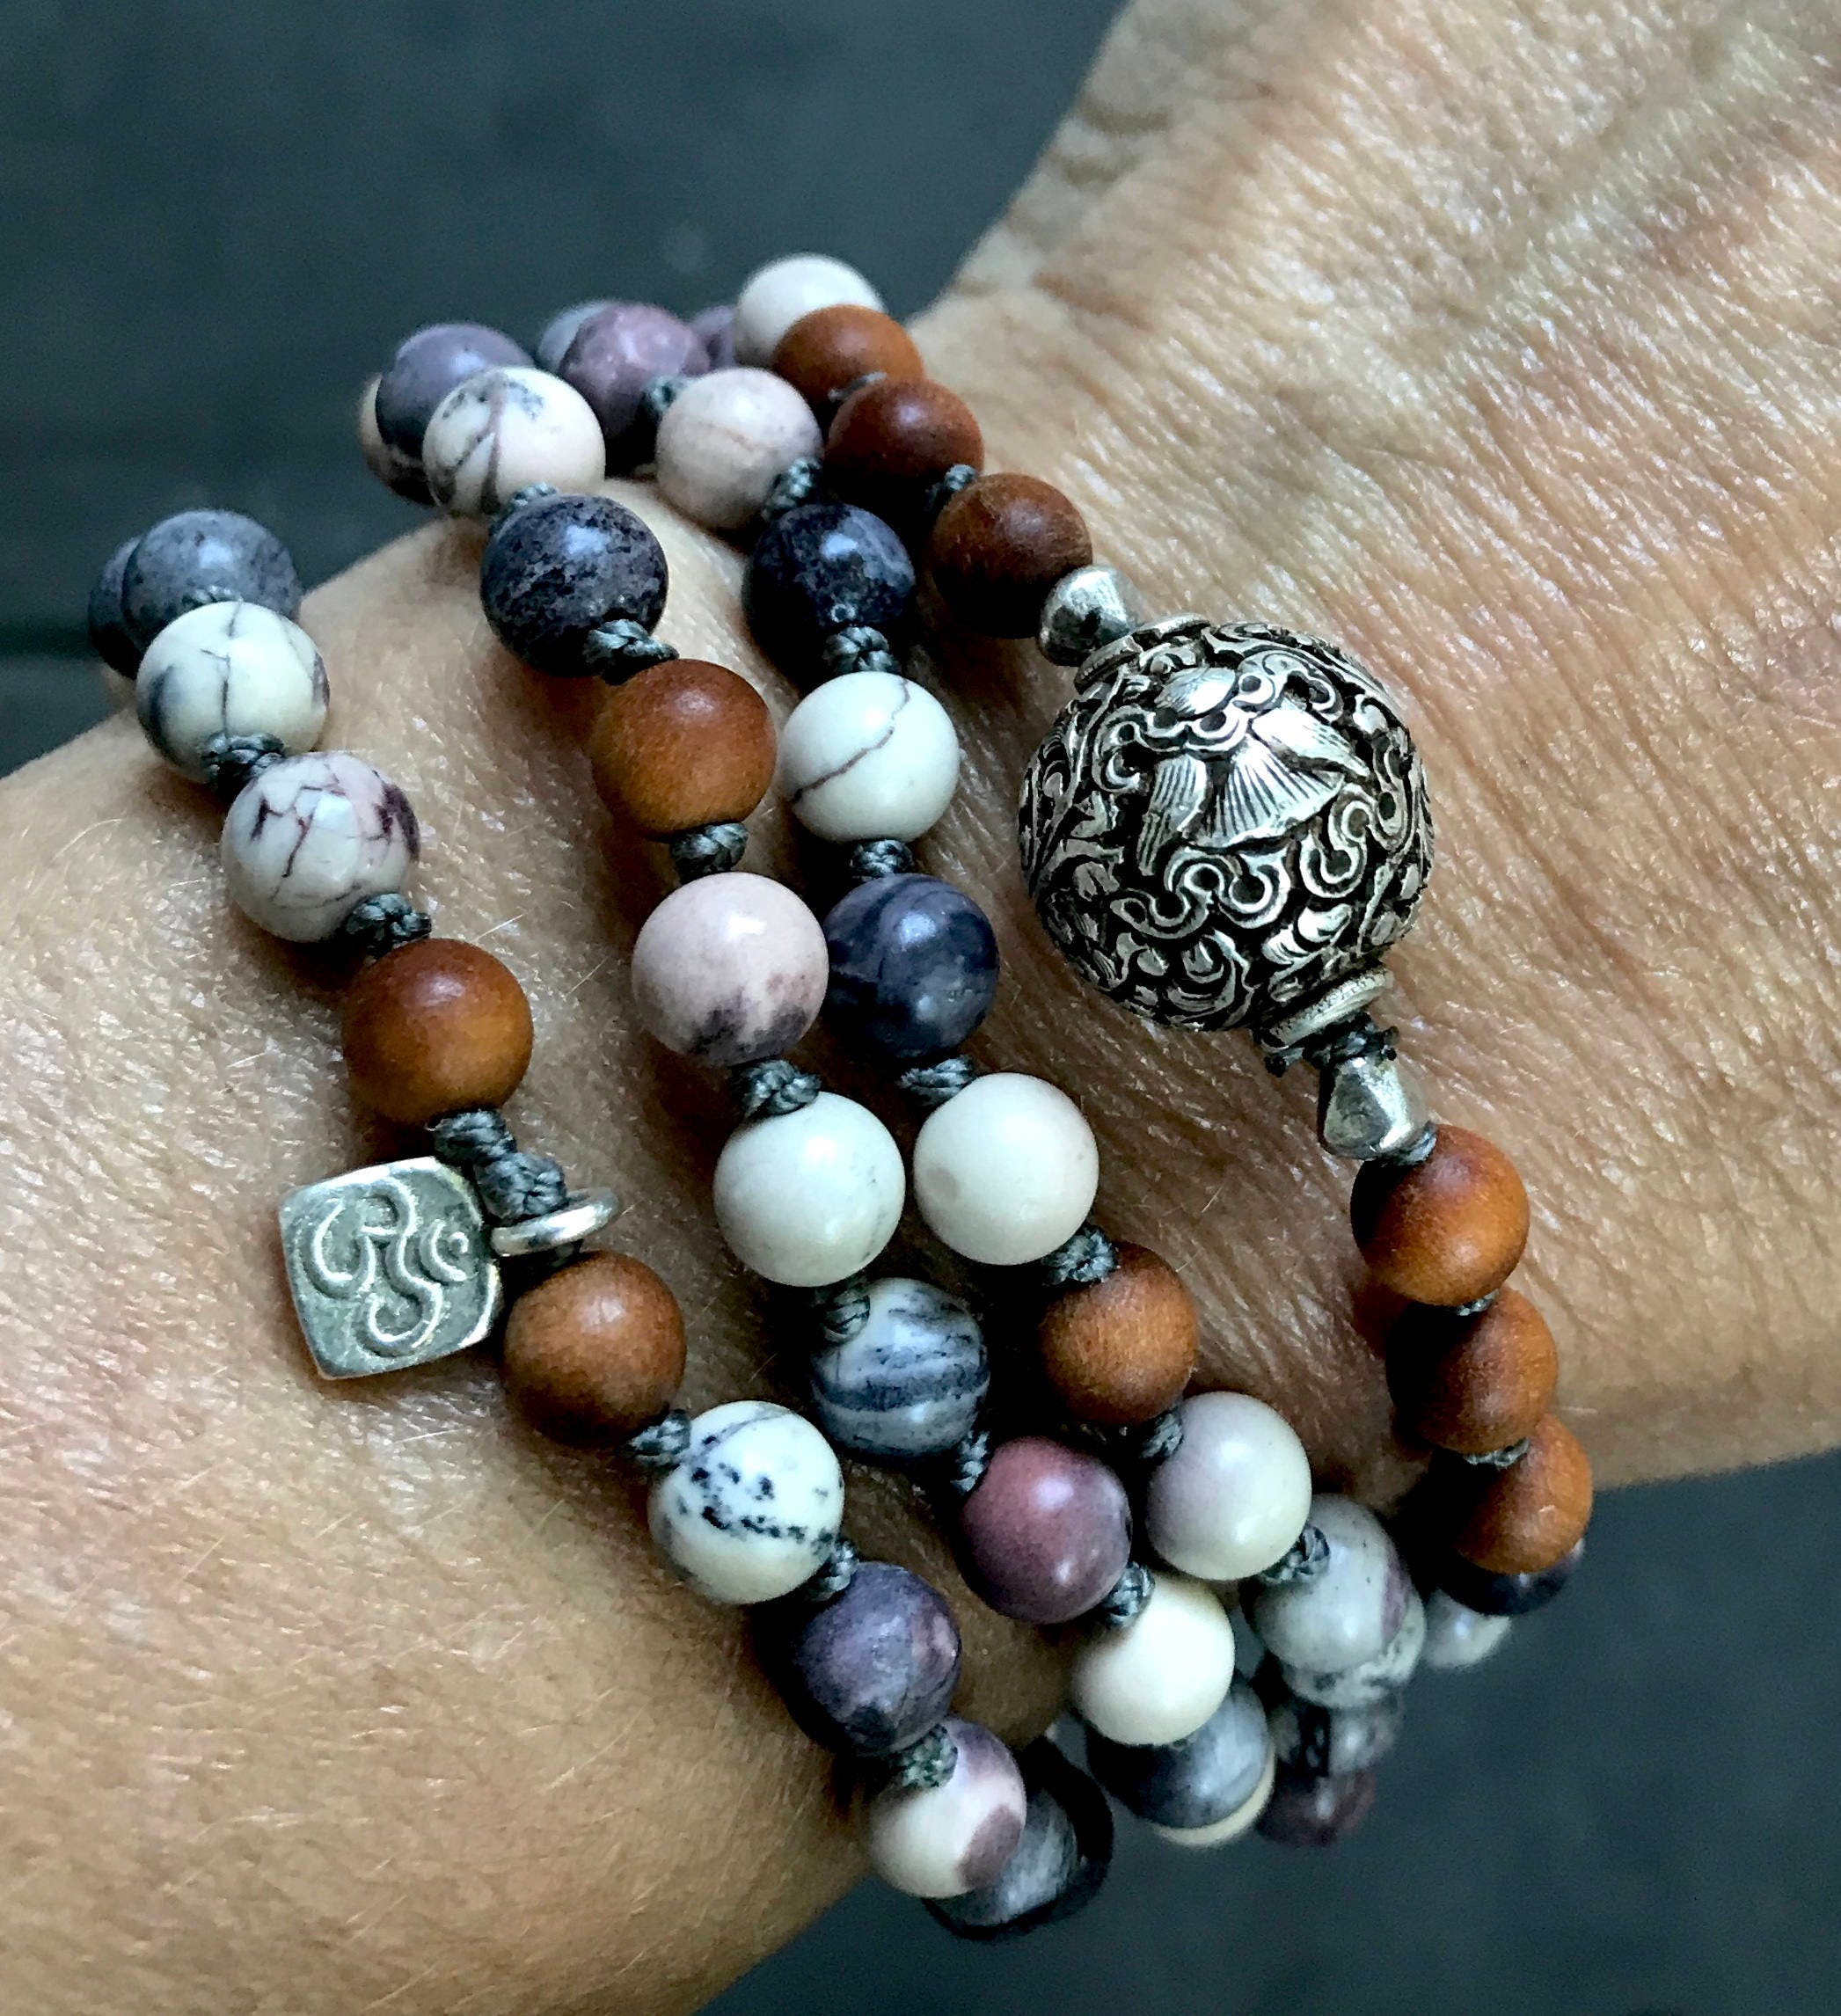 Mala for protection 8 auspicious symbol the parasol symbol mala for protection 8 auspicious symbol the parasol symbol porcelain jasper sandalwood mala beads gift with meaning yoga gift biocorpaavc Gallery